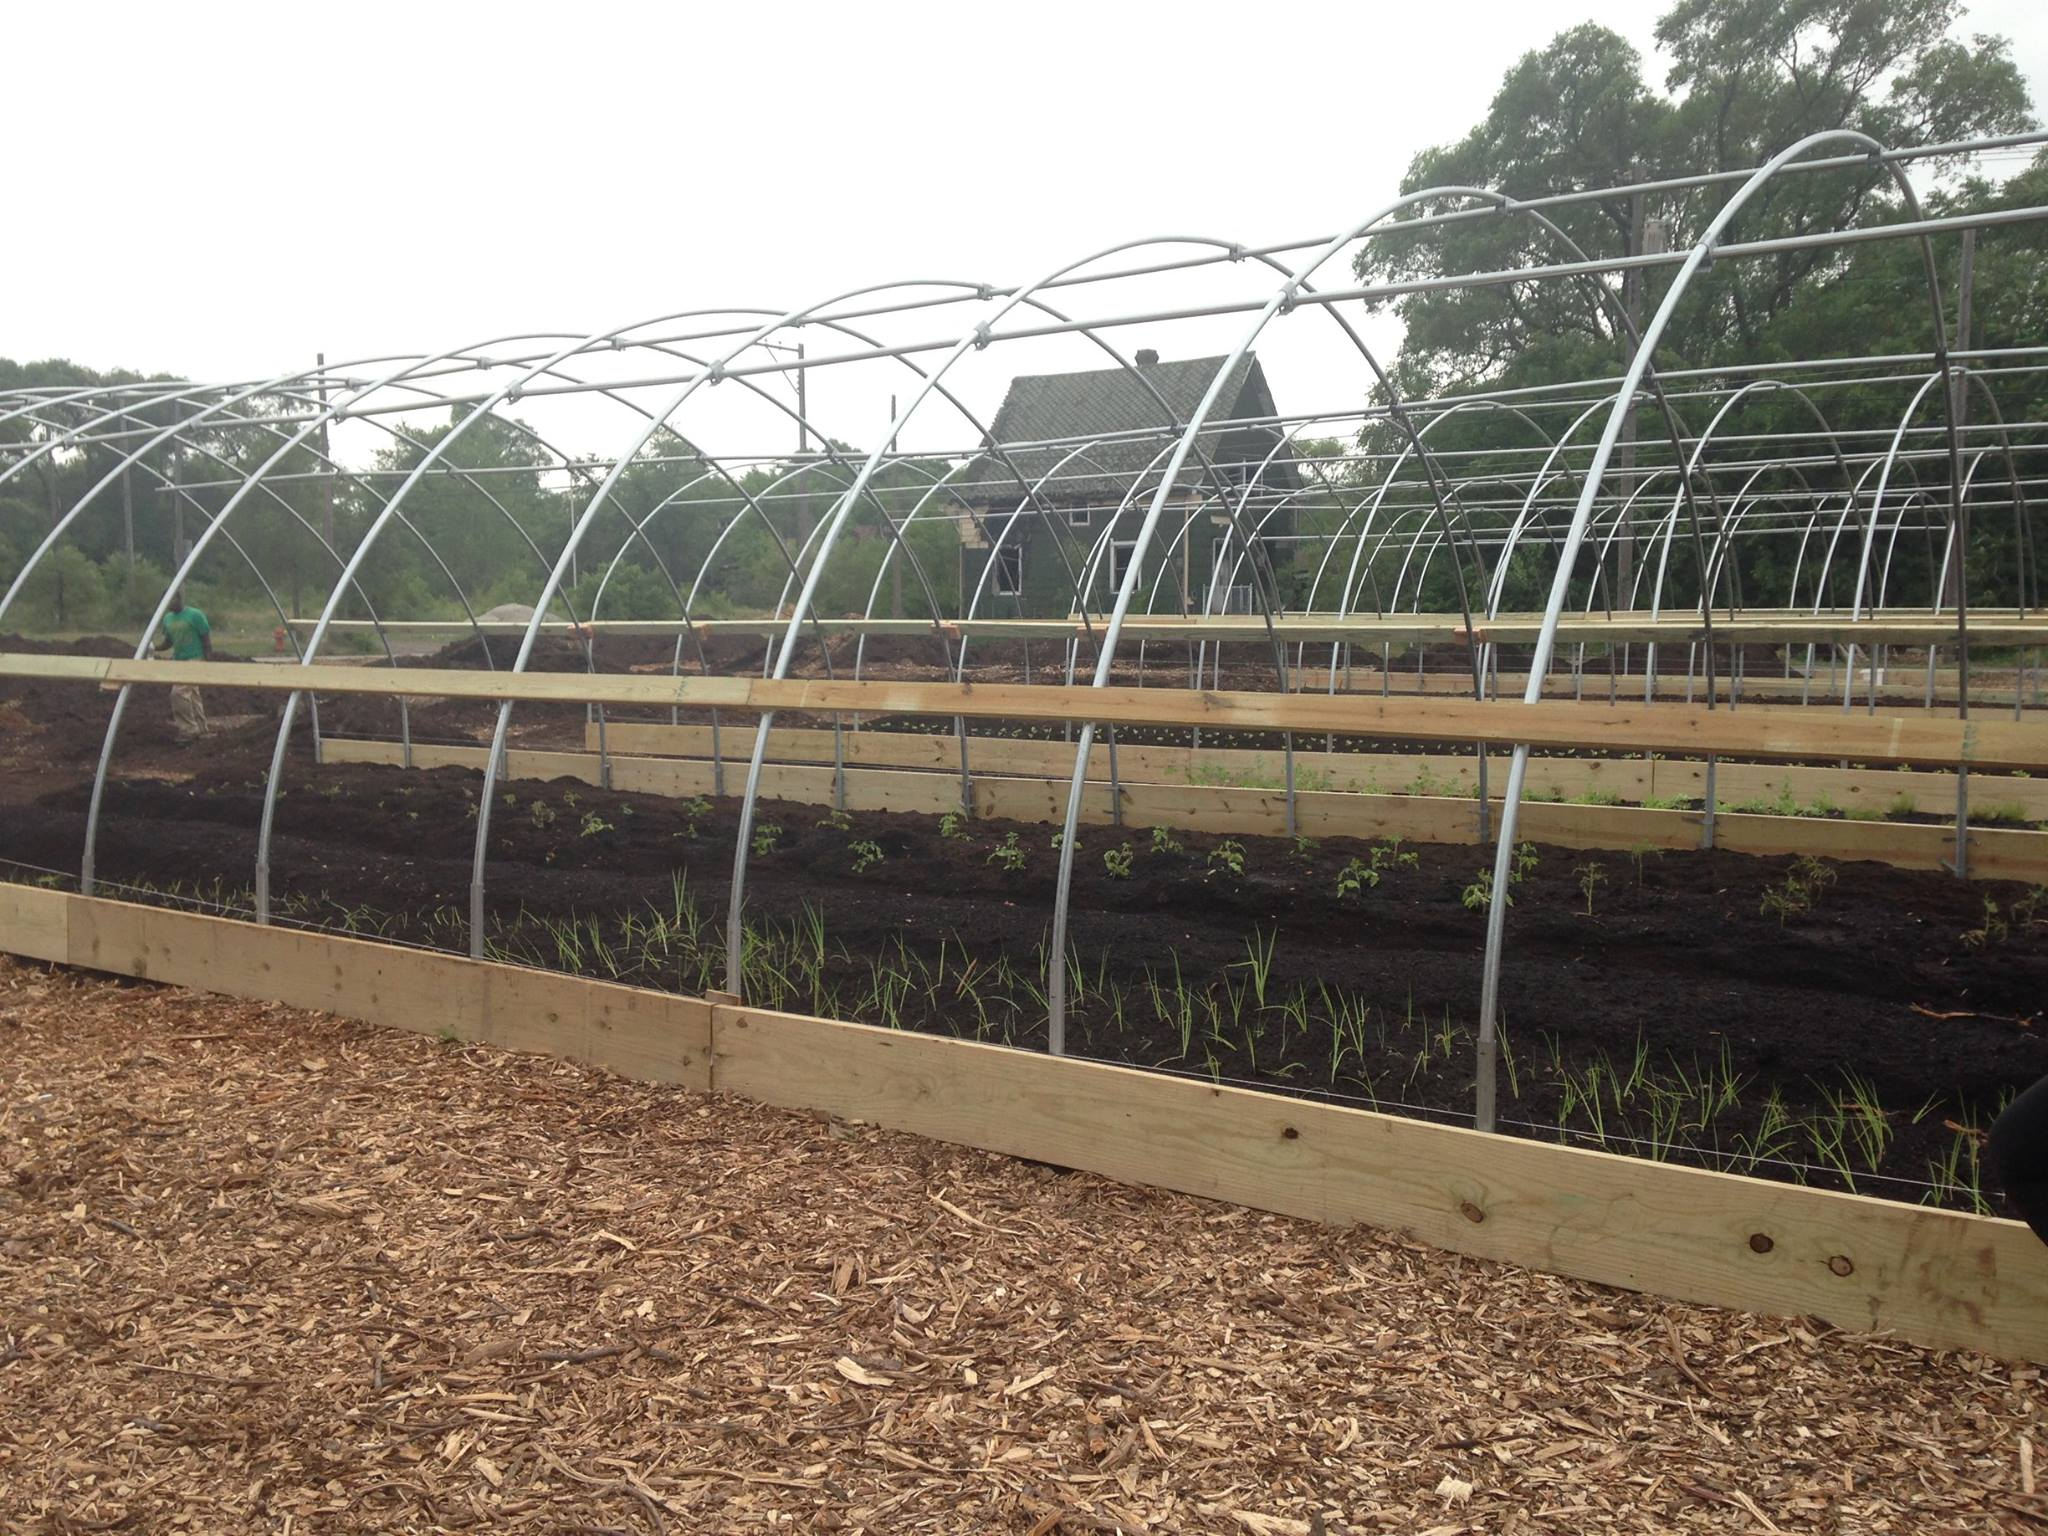 Day 4: Hoop houses have been erected, seedlings and seeds have been planted, and plastic will come in the fall